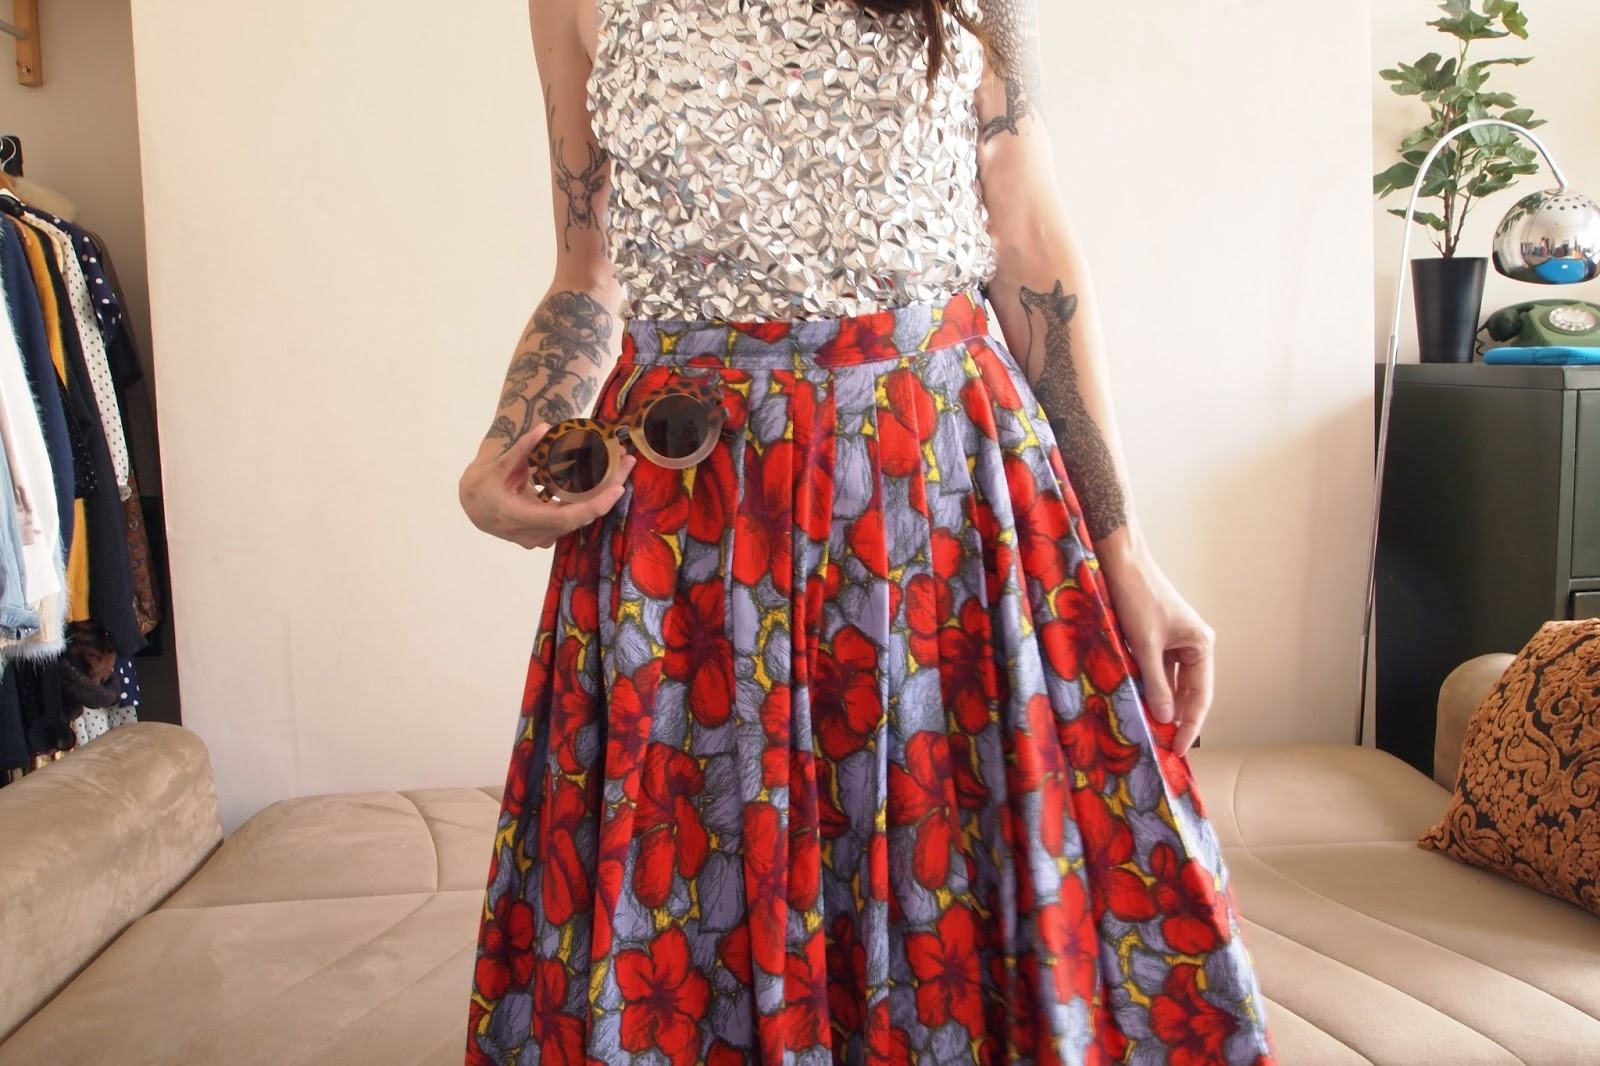 Accept. H m floral skirt are mistaken